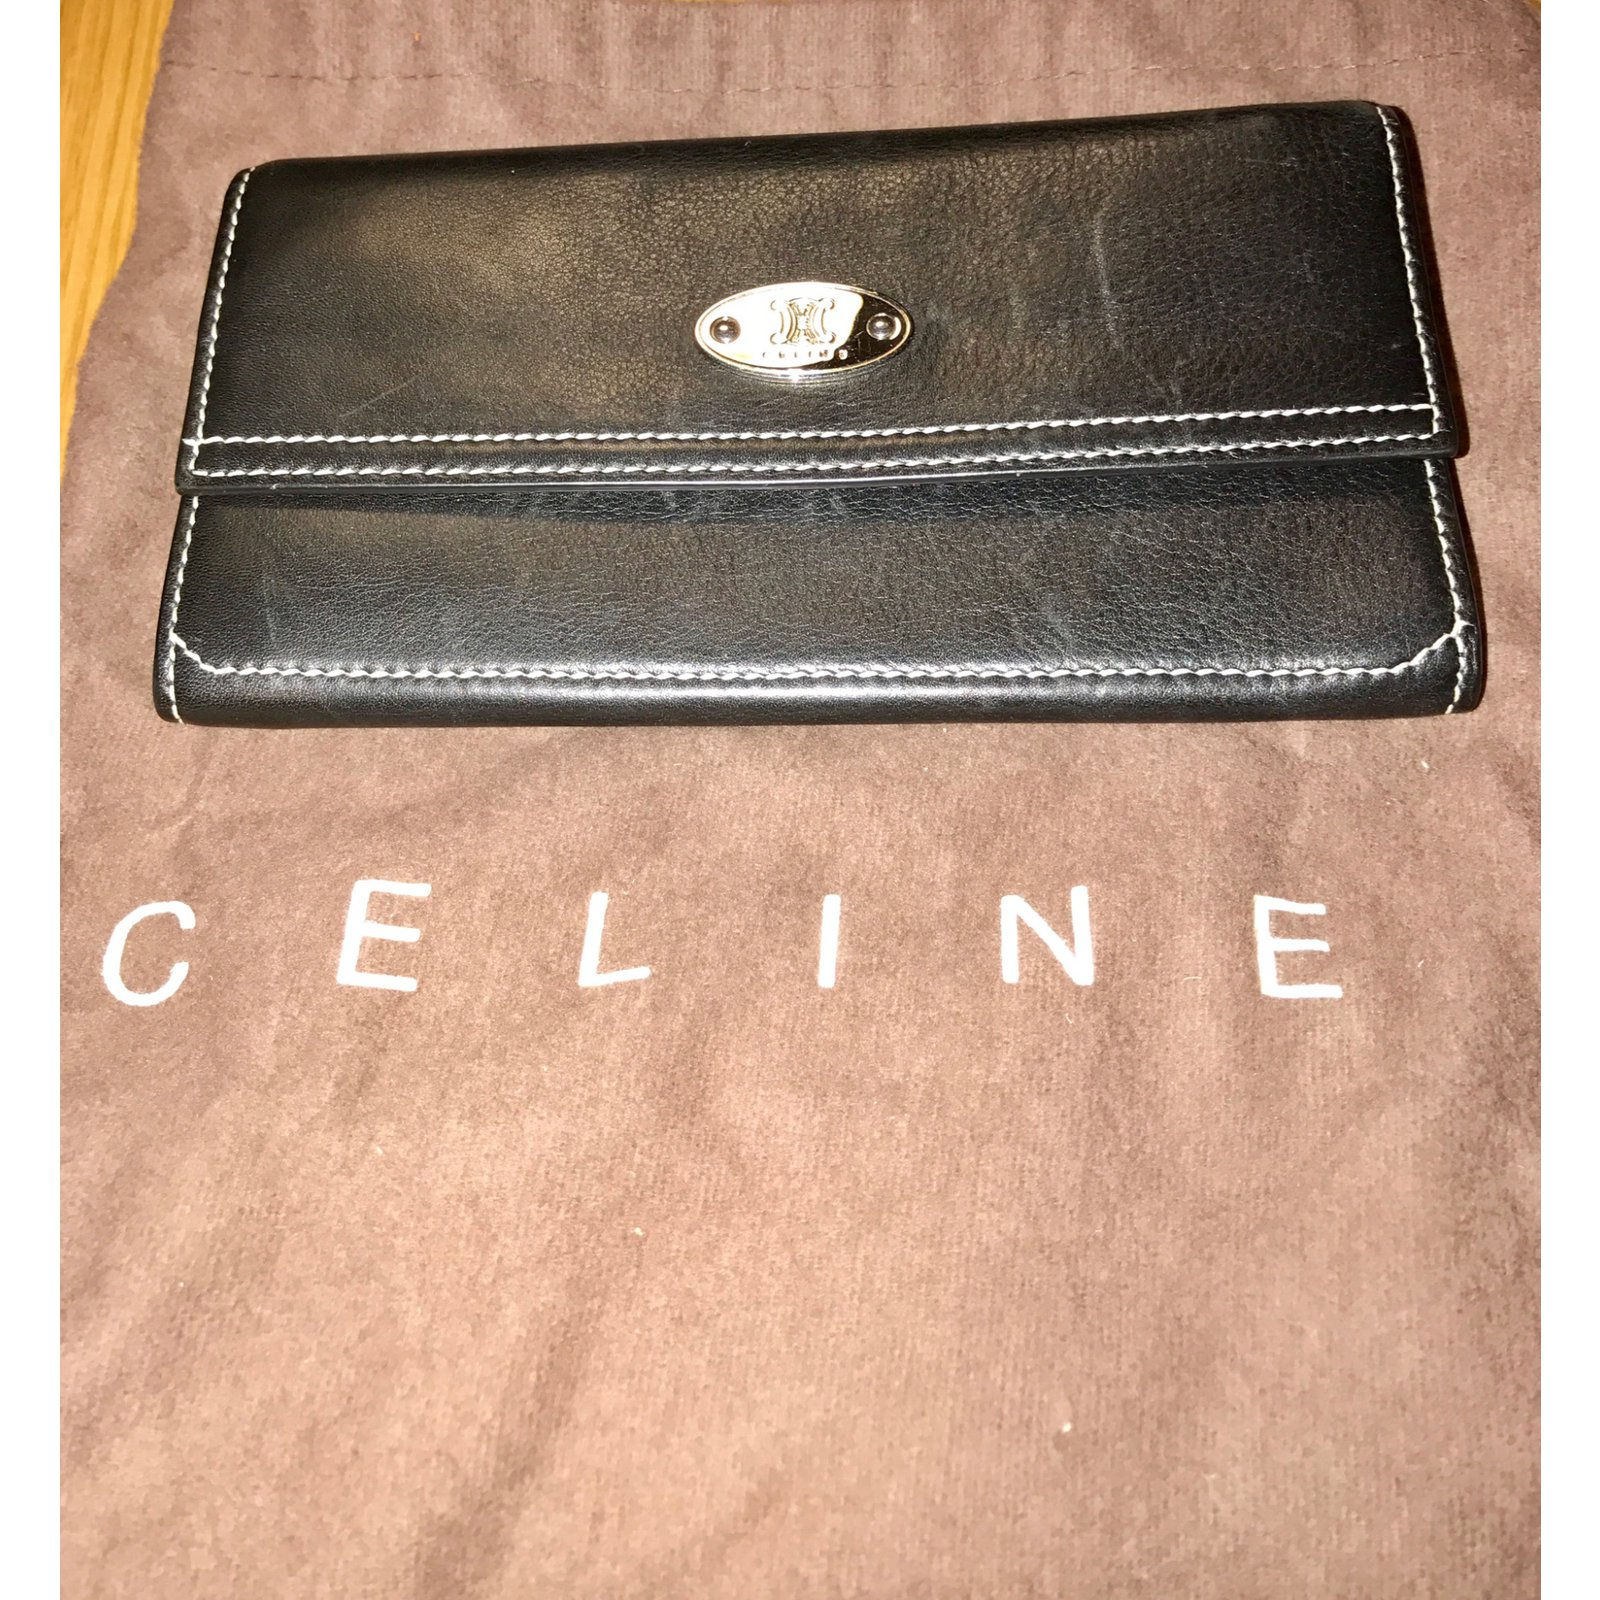 aad63f5a76c3 Celine Women's Wallet Black | Stanford Center for Opportunity Policy ...